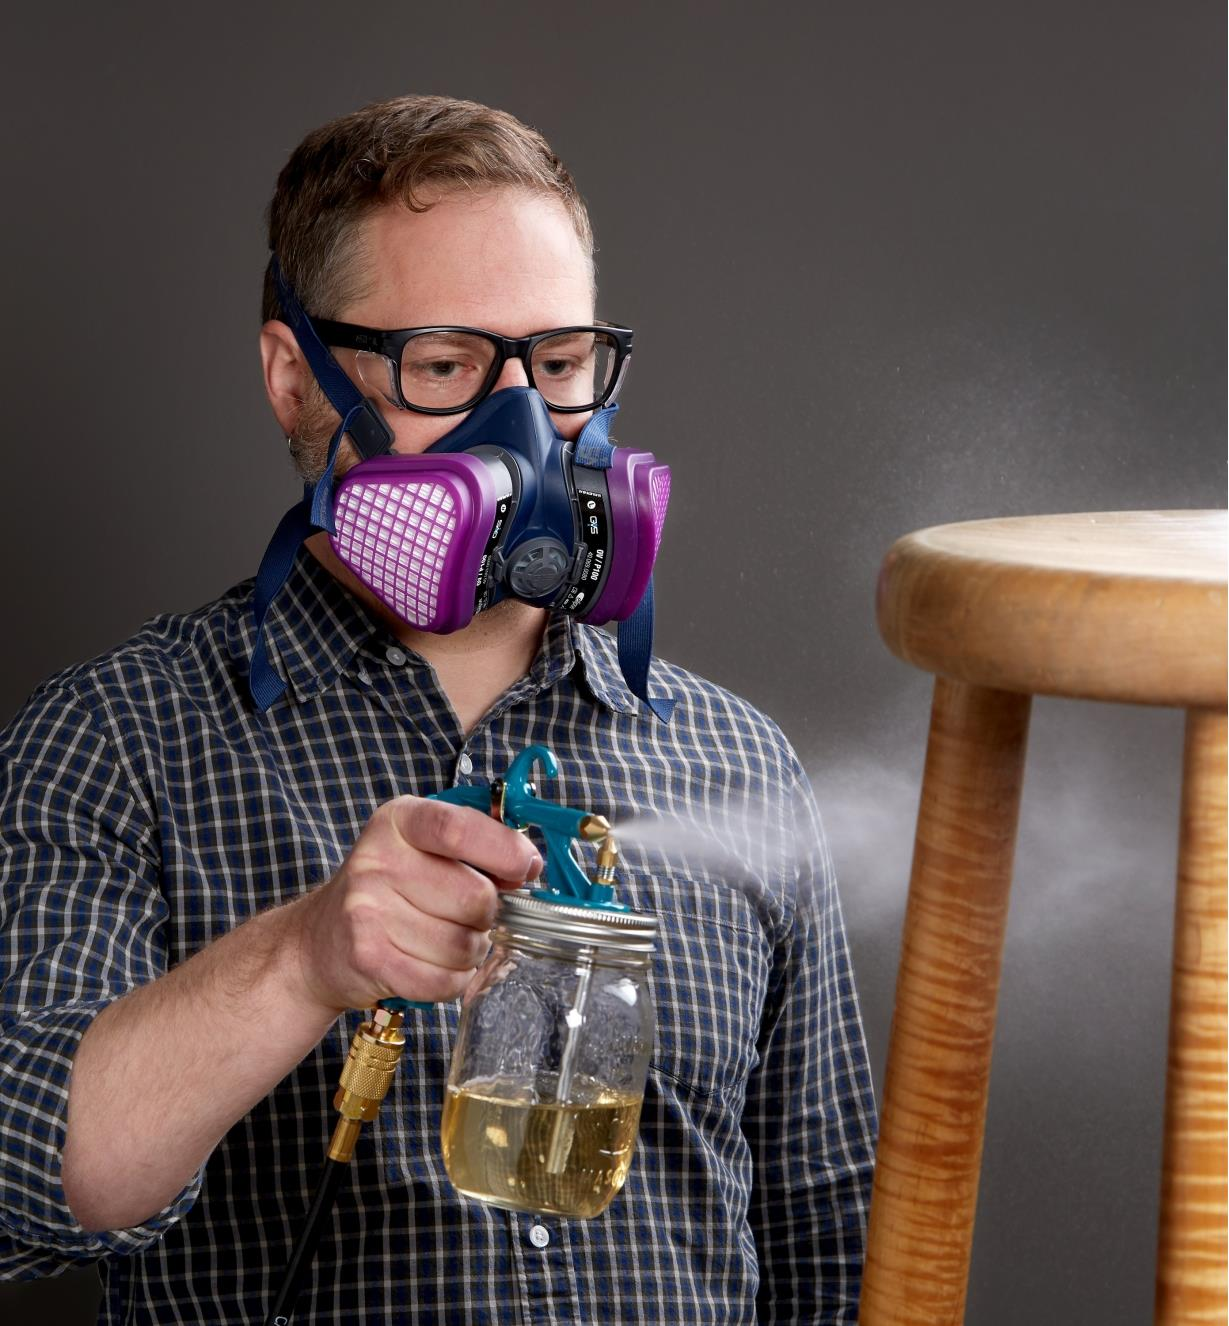 A man wearing the Elipse low-profile cartridge respirator